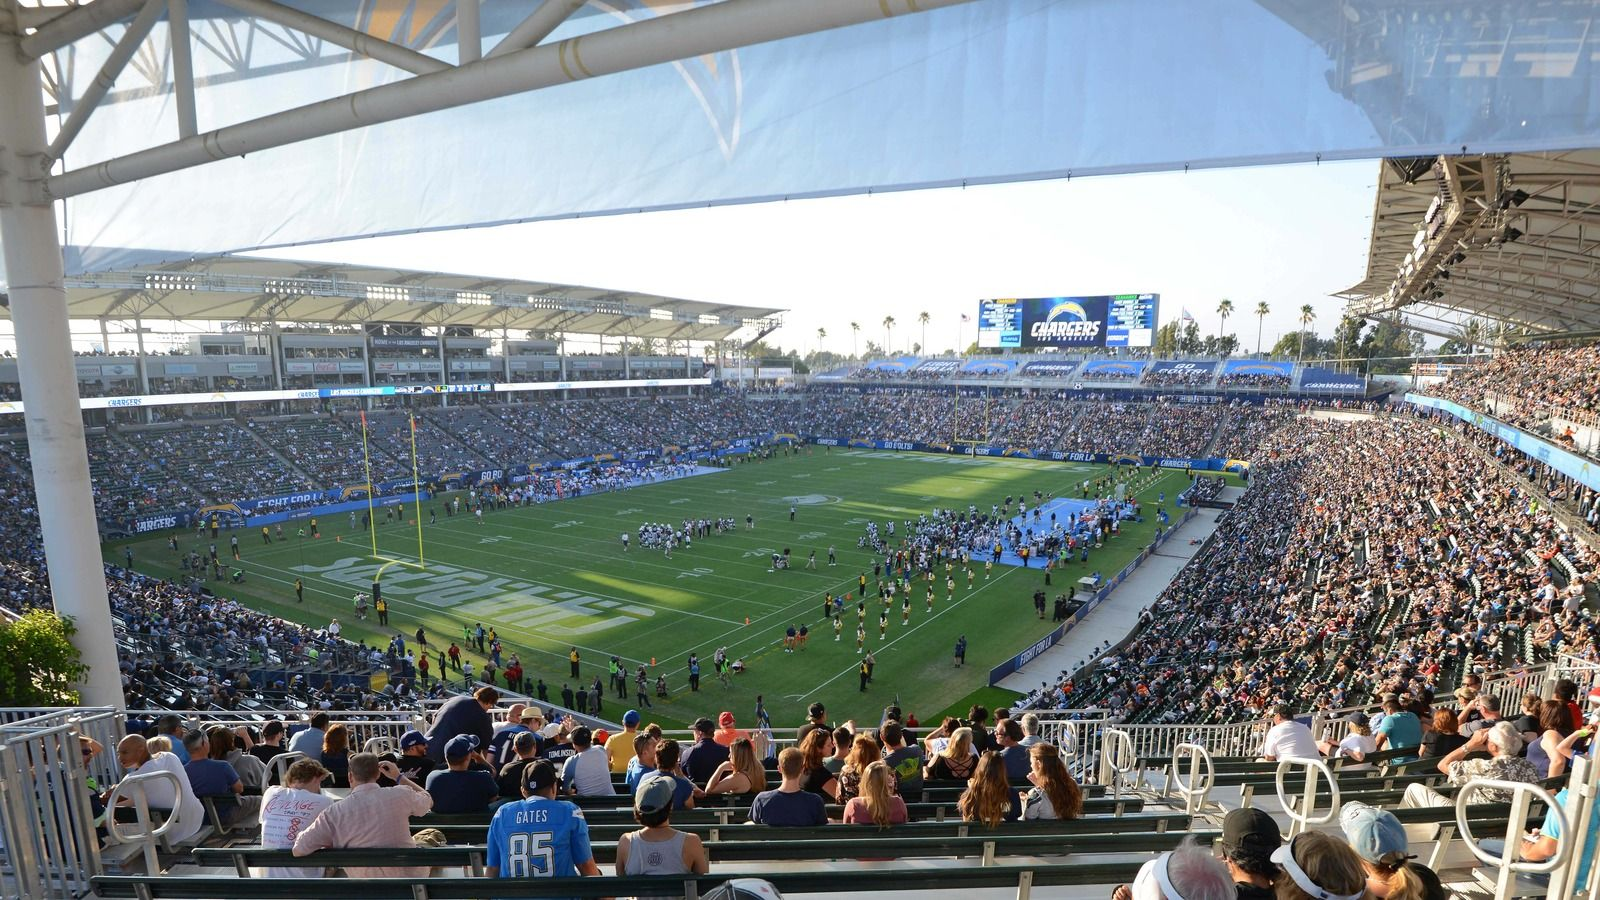 The Los Angeles Chargers Finally Got To Play In Their Temporary Venue The Stubhub Center On Sunday But Fans Wer Stubhub Center Stubhub Moving To Las Vegas